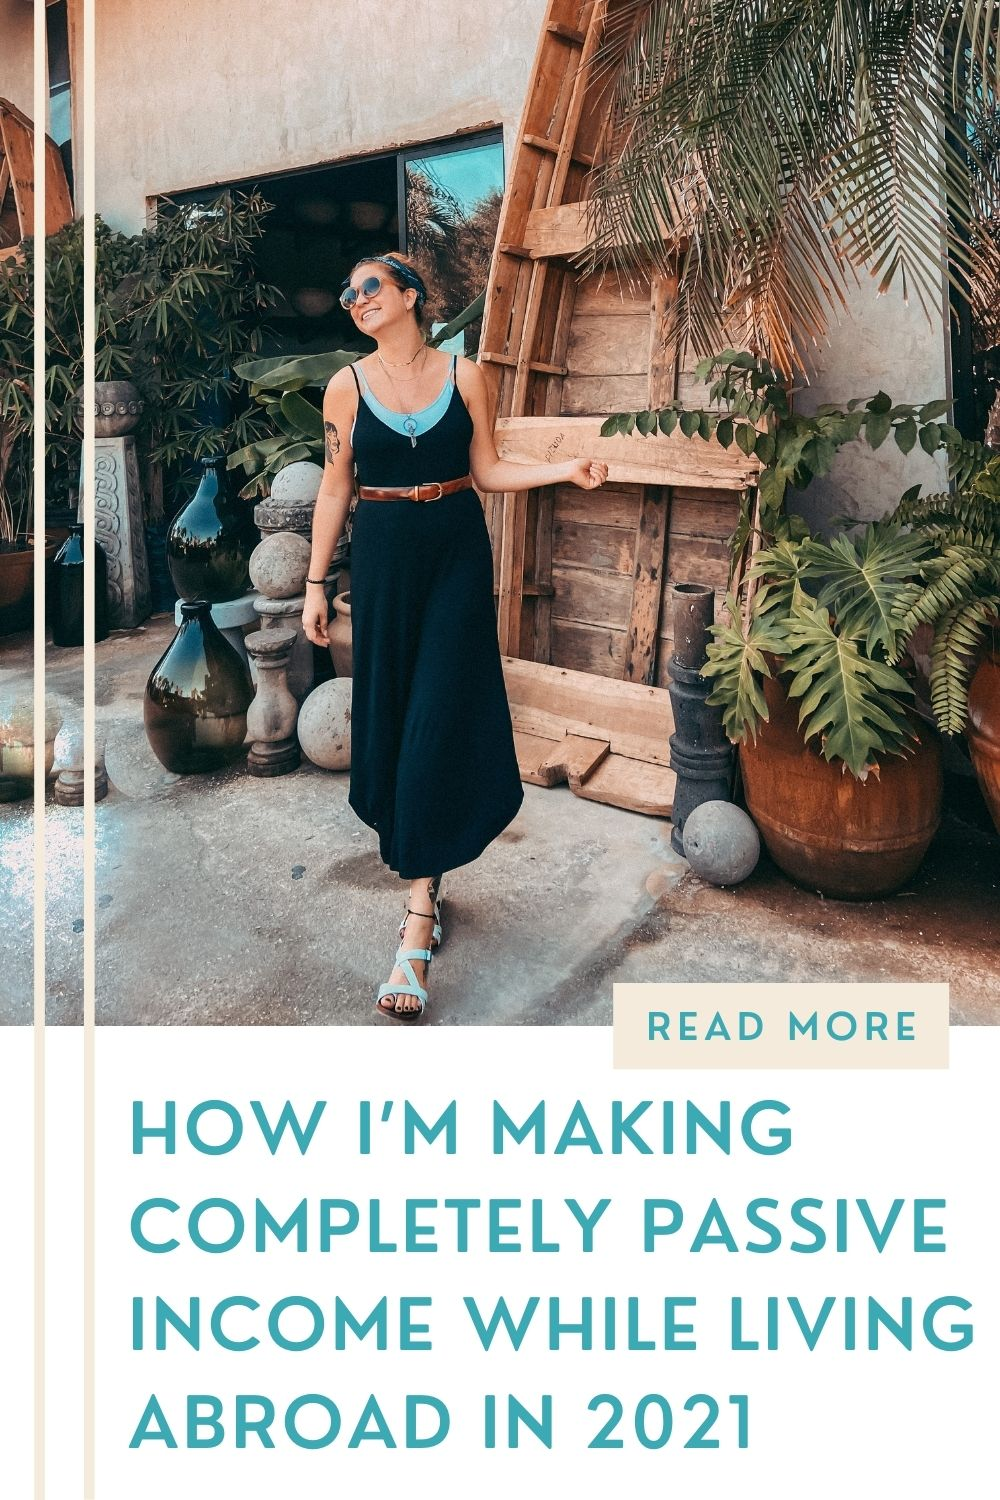 How I'm Making Completely Passive Income While Living Abroad In 2021 - The Daily Sunday